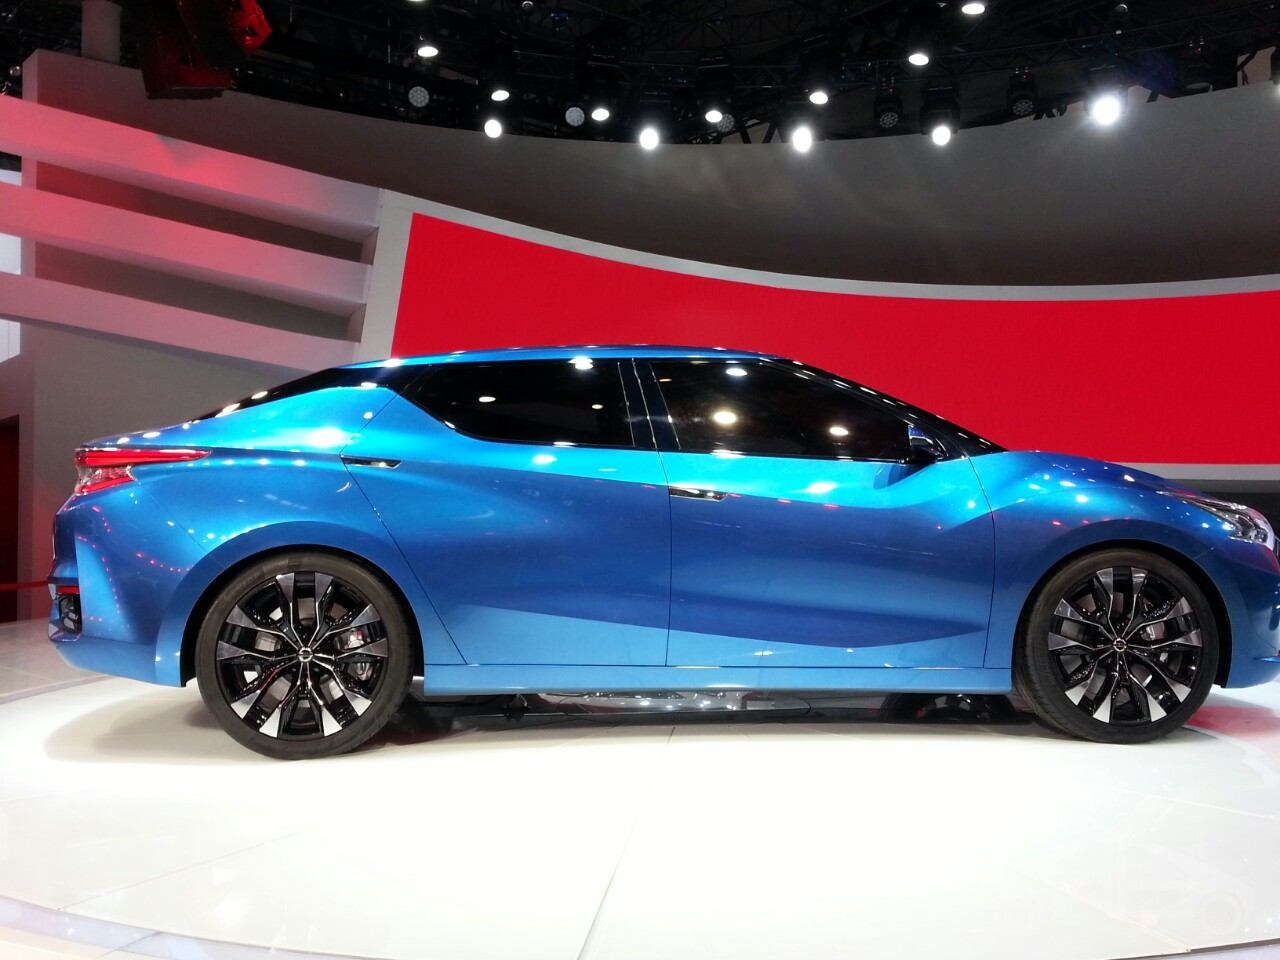 Nissan Lannia concept at 2014 Beijing Auto Show - side profile